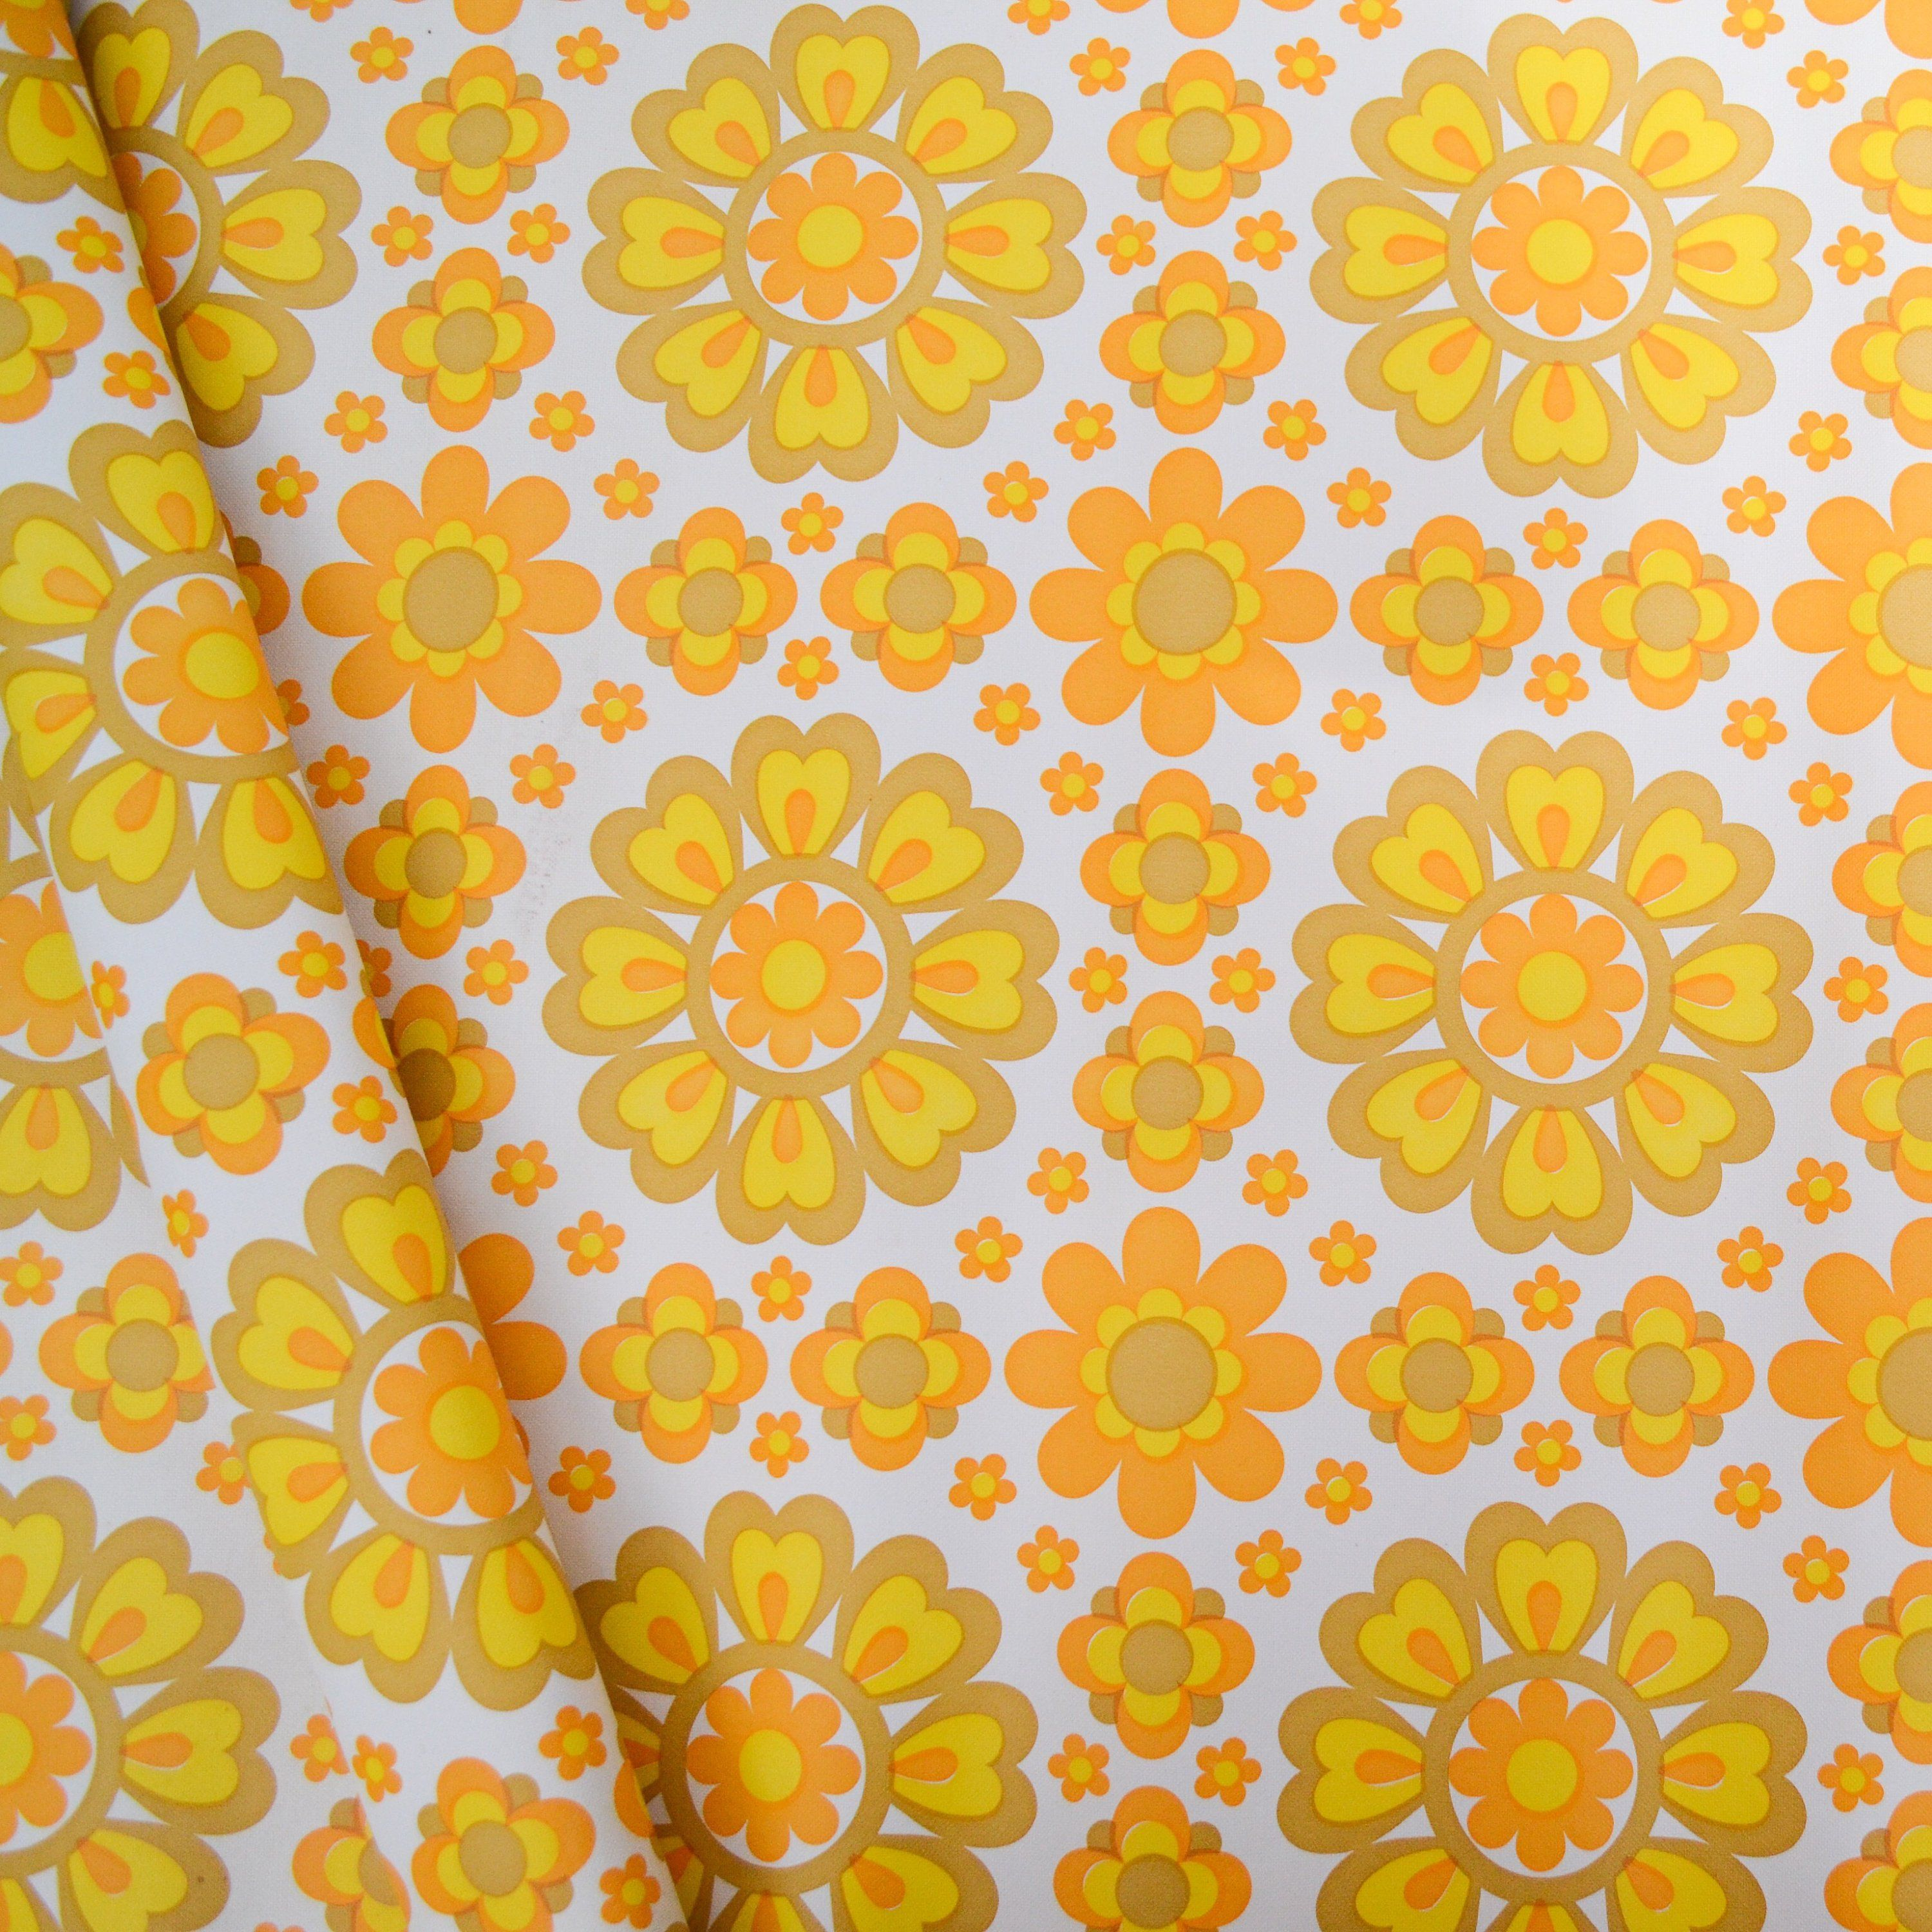 Vintage Flower Power Wallpaper Orange And Yellow Floral Wallpaper